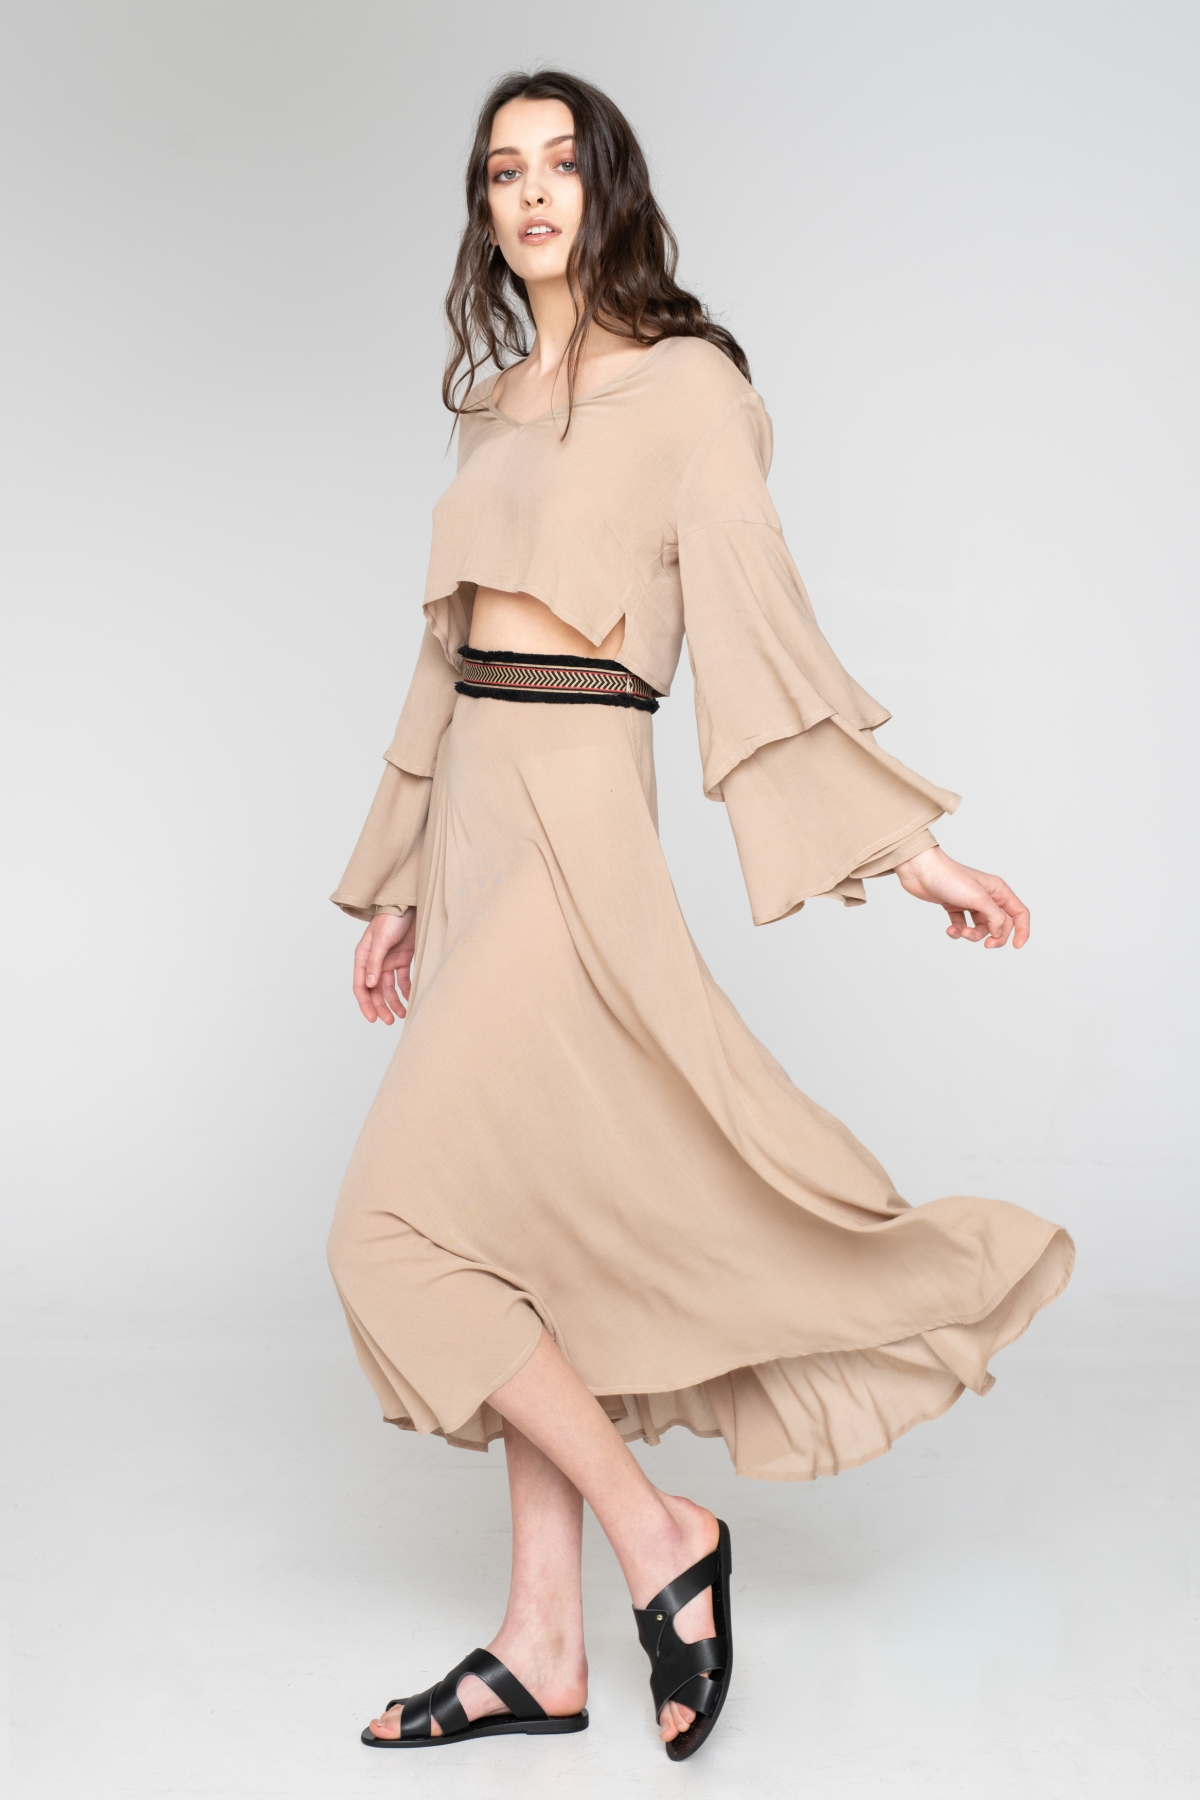 Fringes Beige Skirt